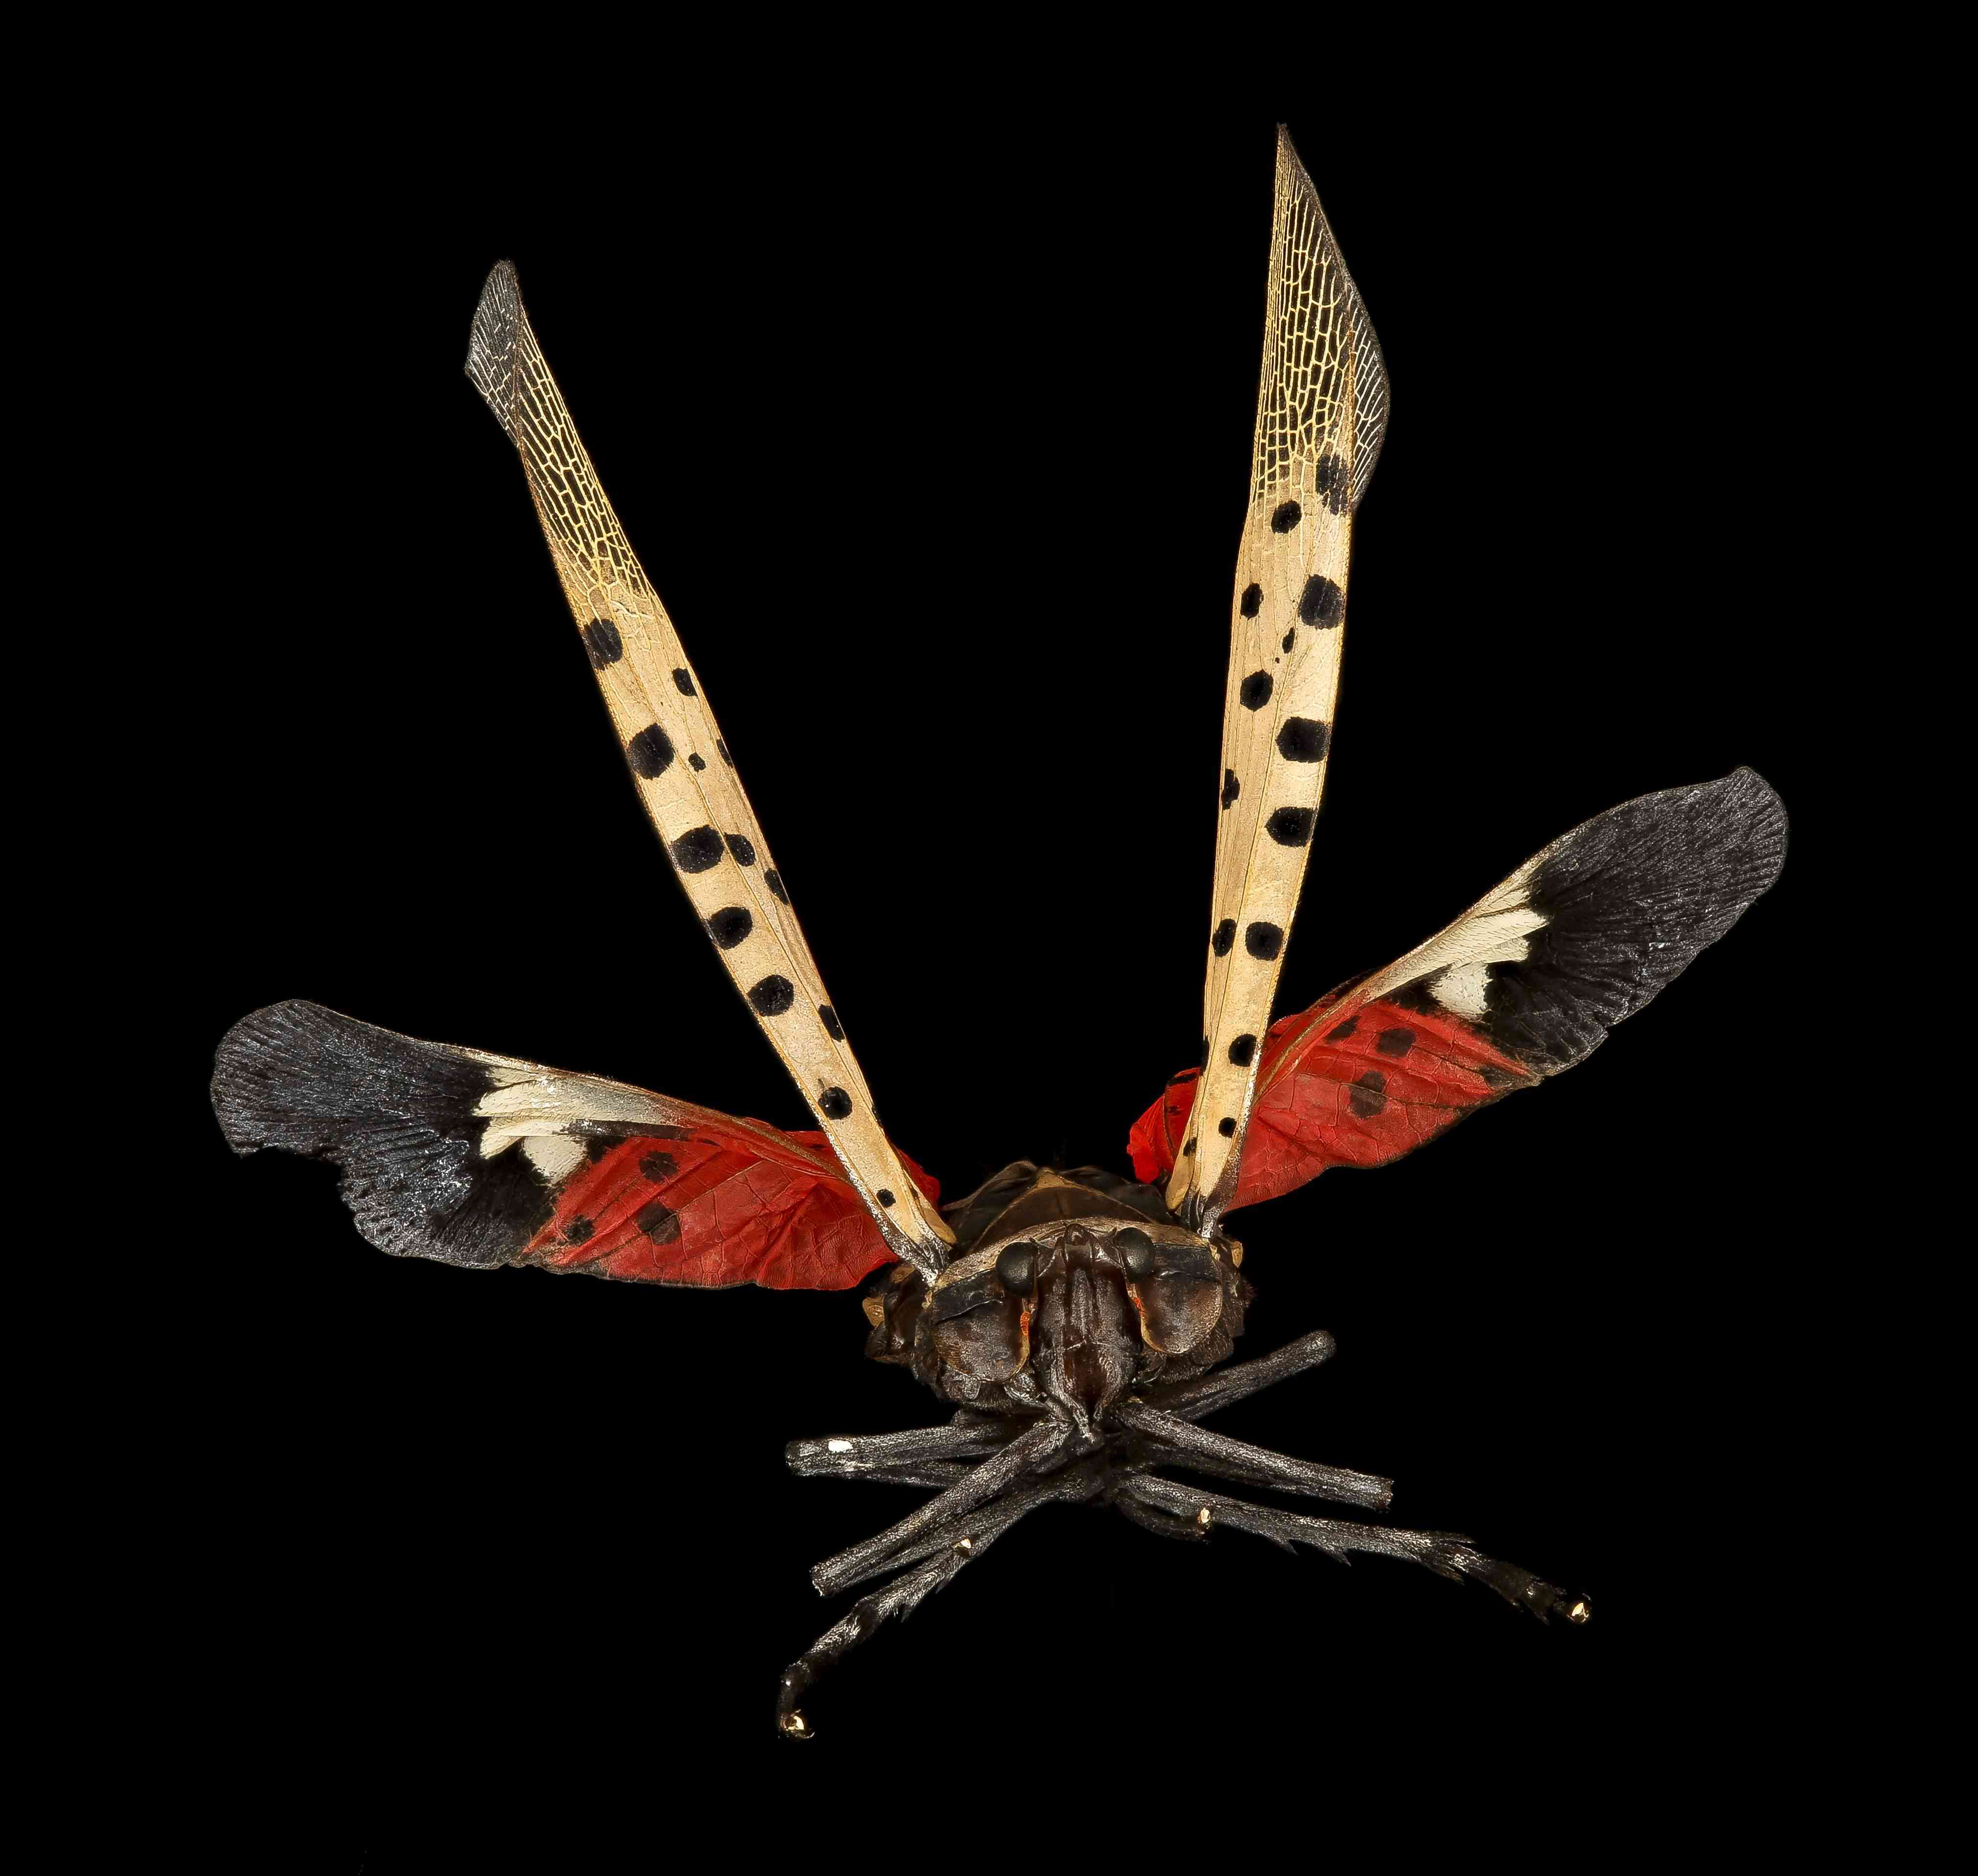 closeup photo of the lanternfly